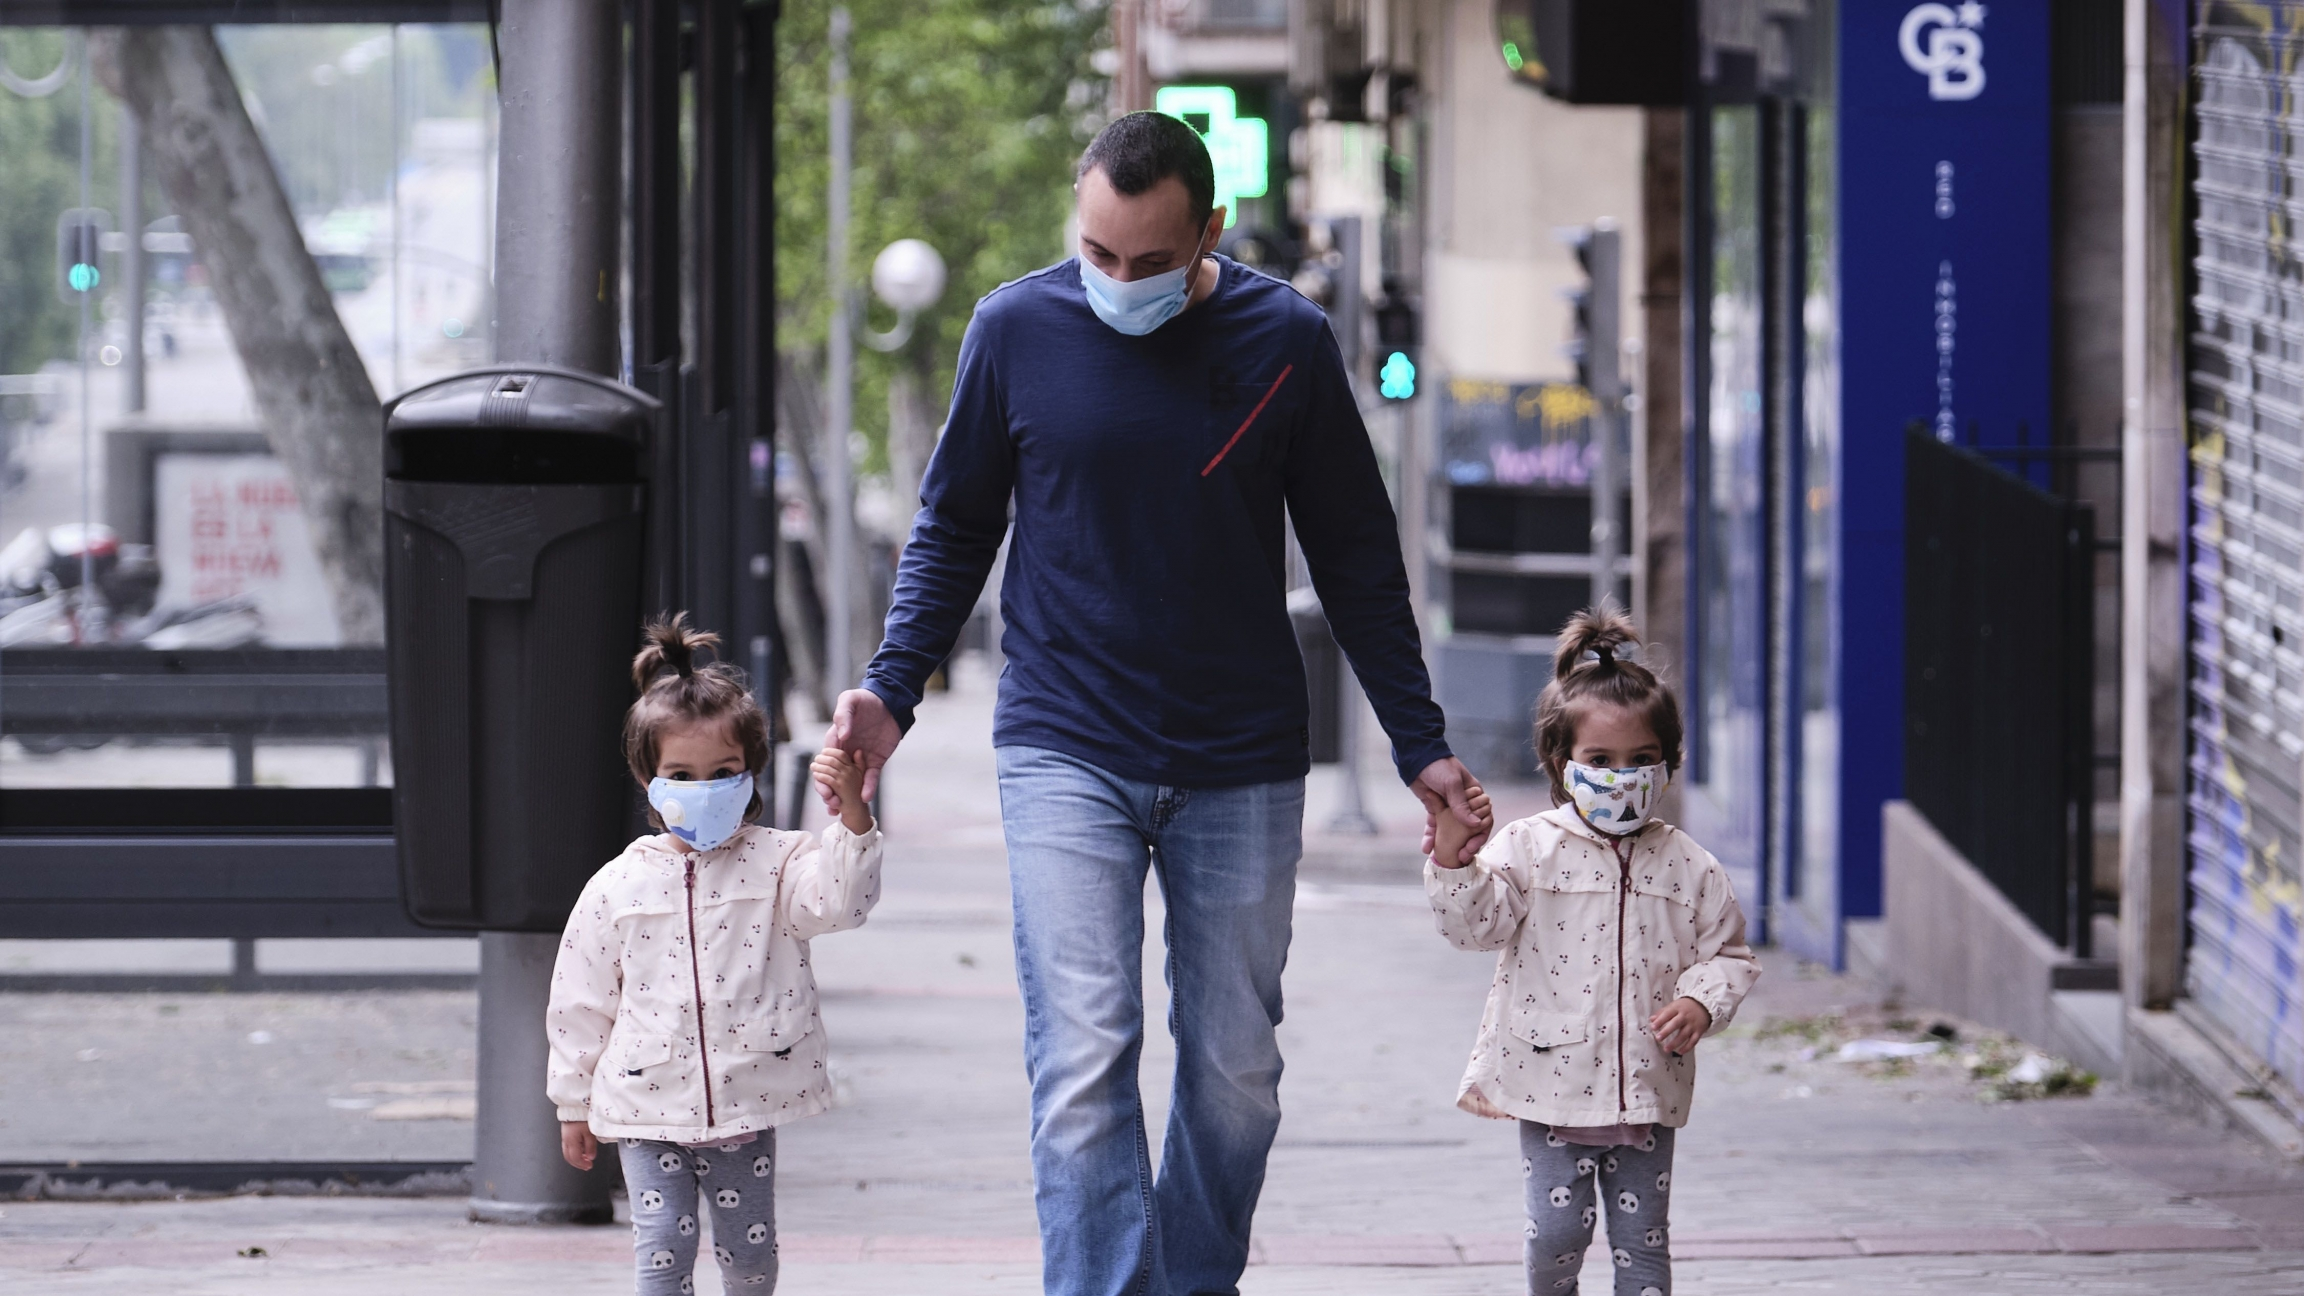 José Valdes takes his twin daughters out for a walk in Madridon the day Spain liftsrestrictions on children outdoors due to the coronavirus pandemic.